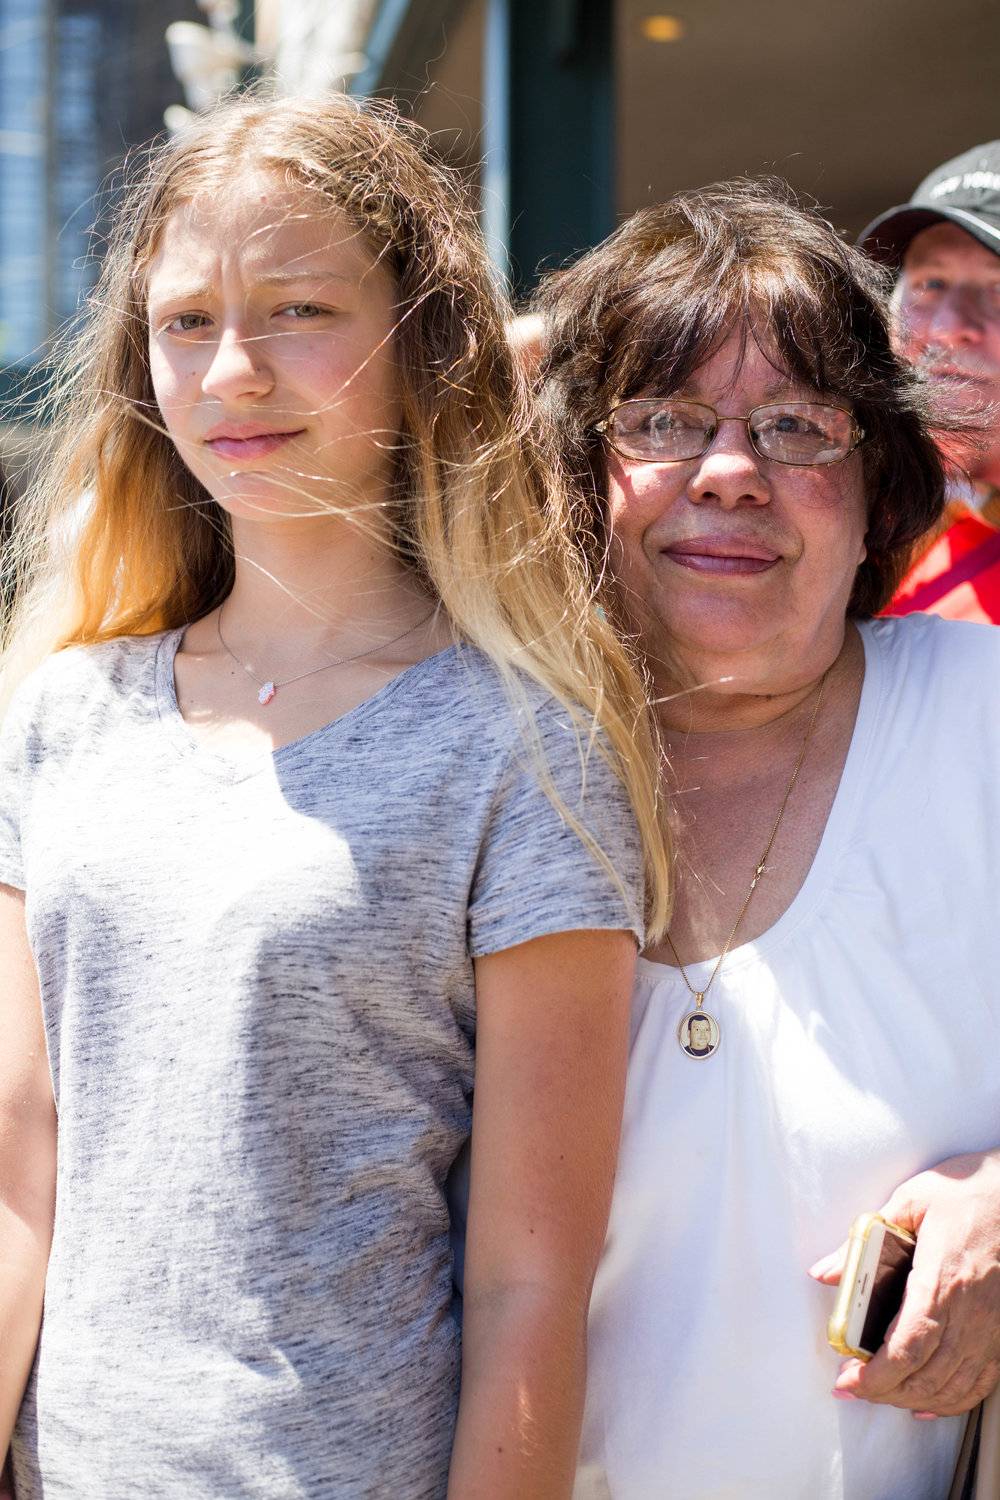 Angelina Marotta,13, (left) and her grandmother, Katherine Marotta, 70, attending the 36th anual Mermaid Day Parade, on June 16, in New York. Photo: Wes Parnell